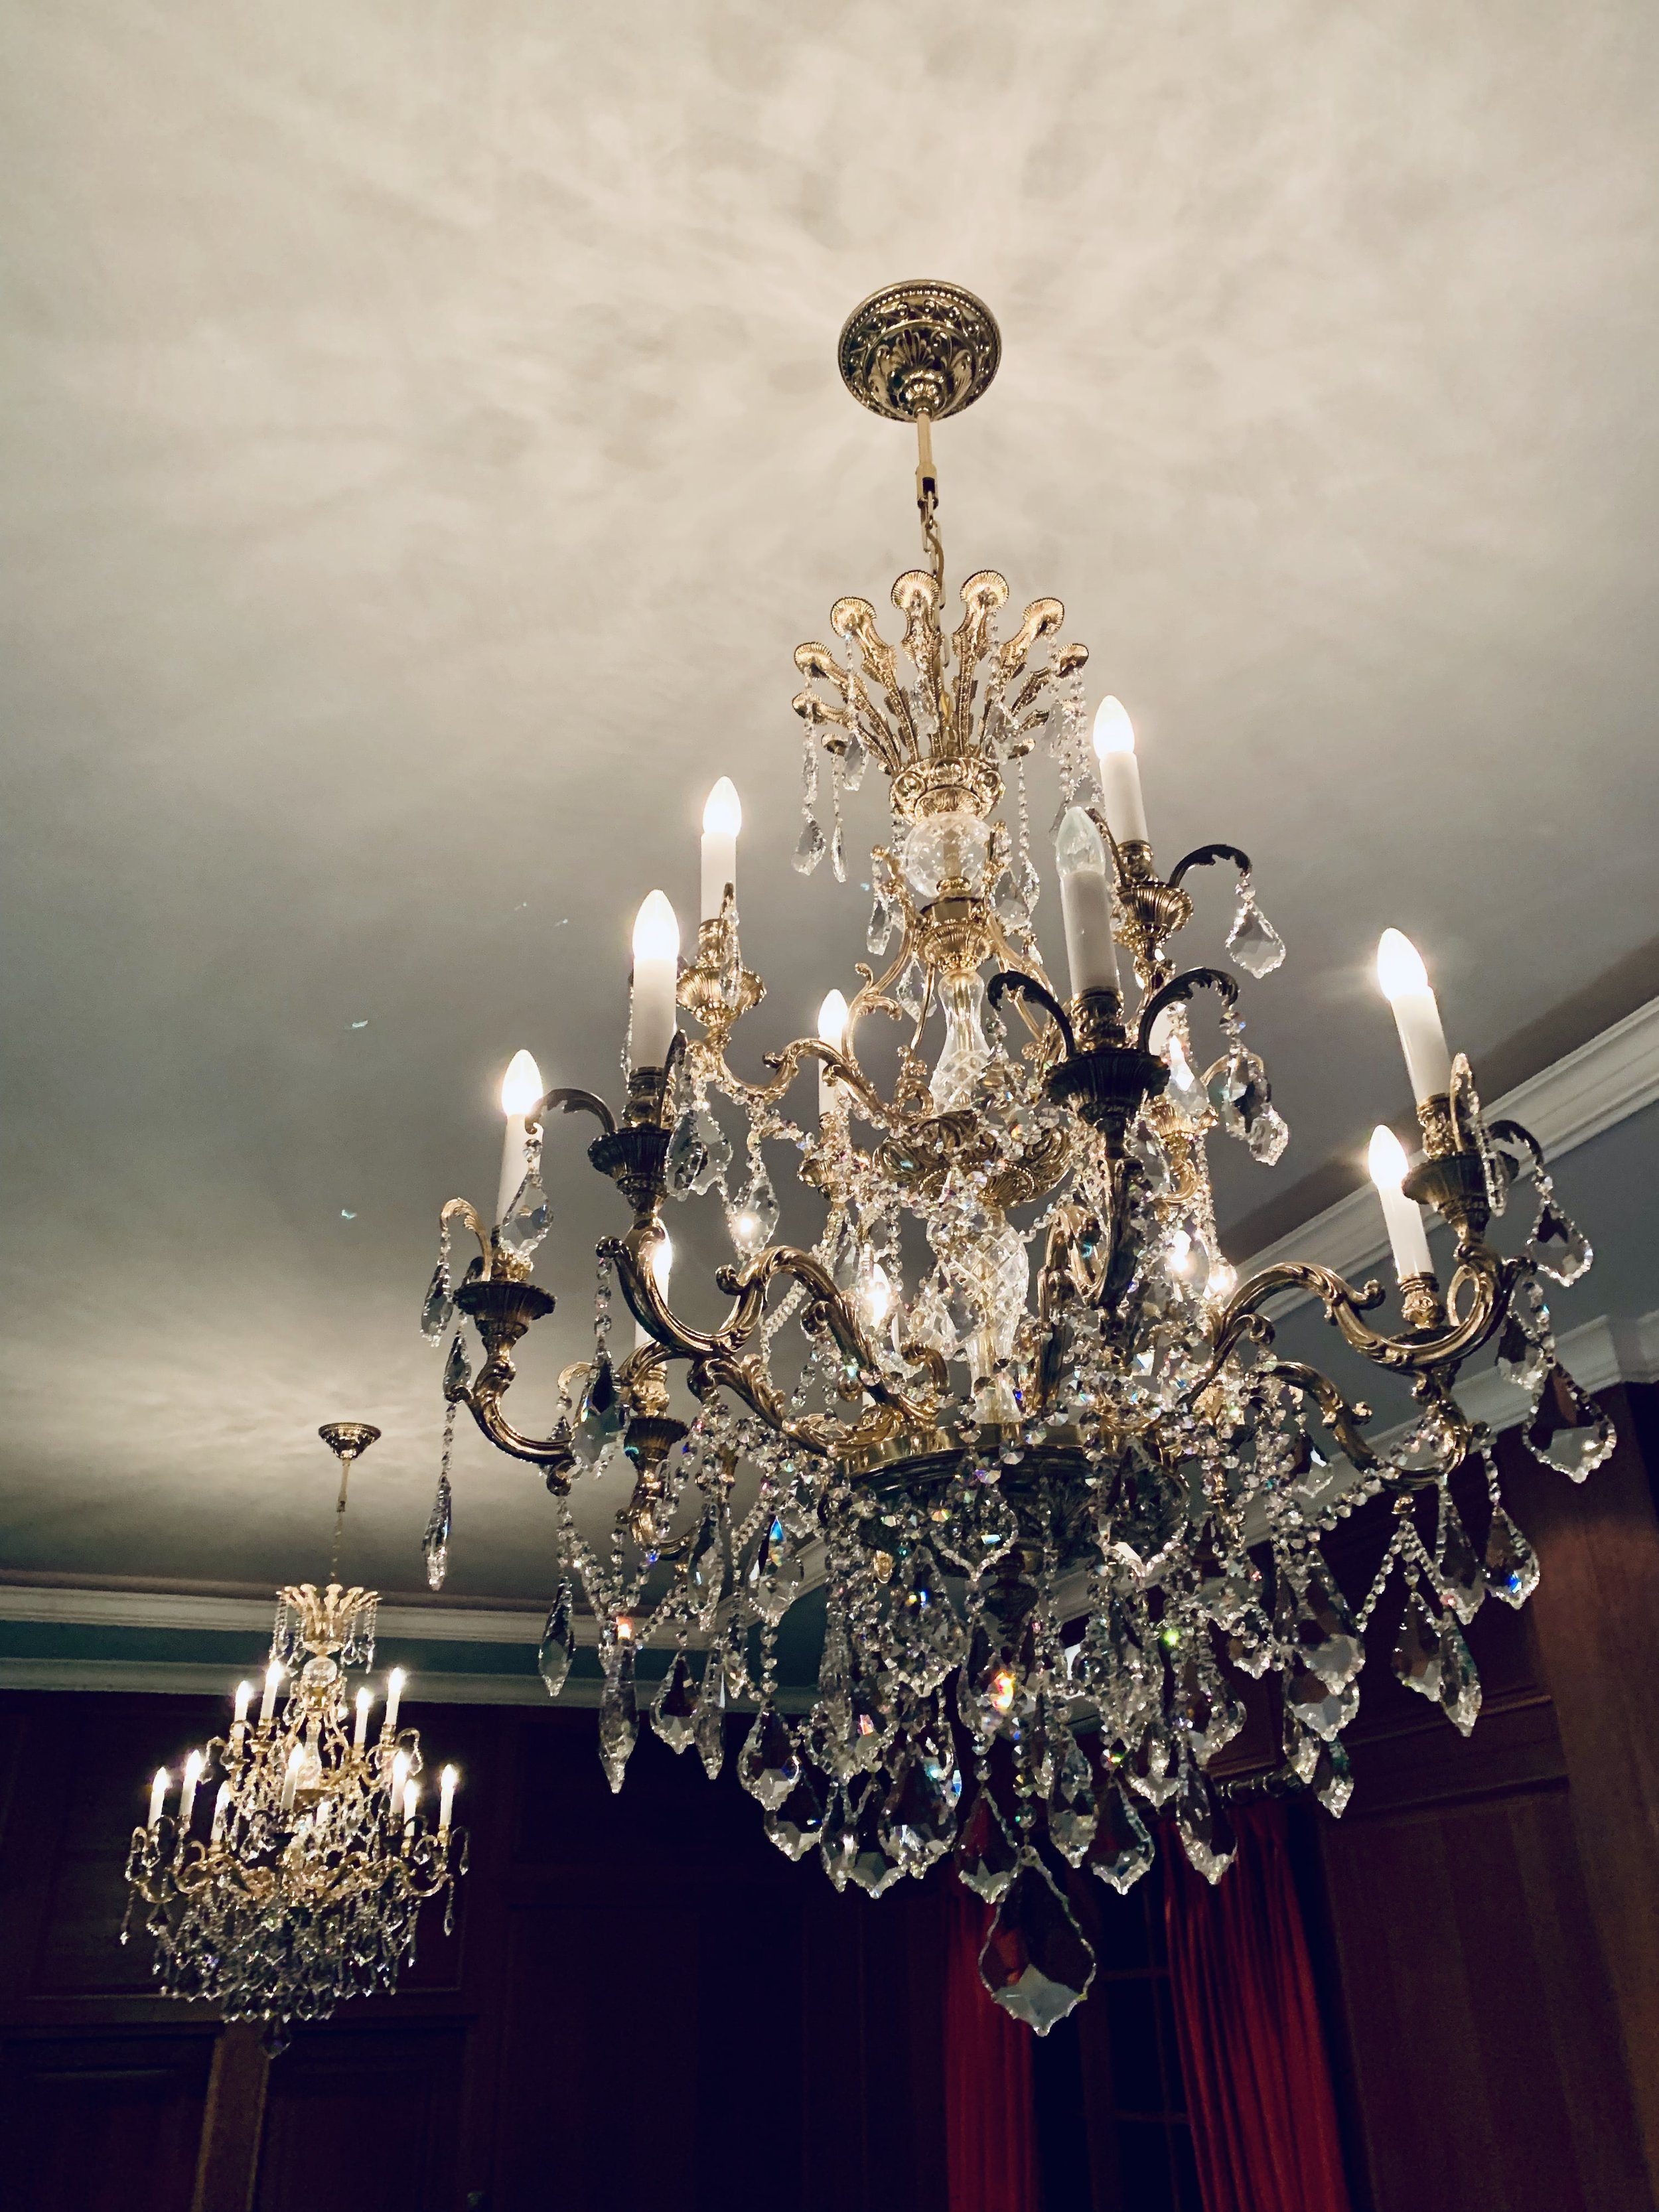 Bohemian Crystal Chandeliers Manufacturer, How To Install A Crystal Chandelier